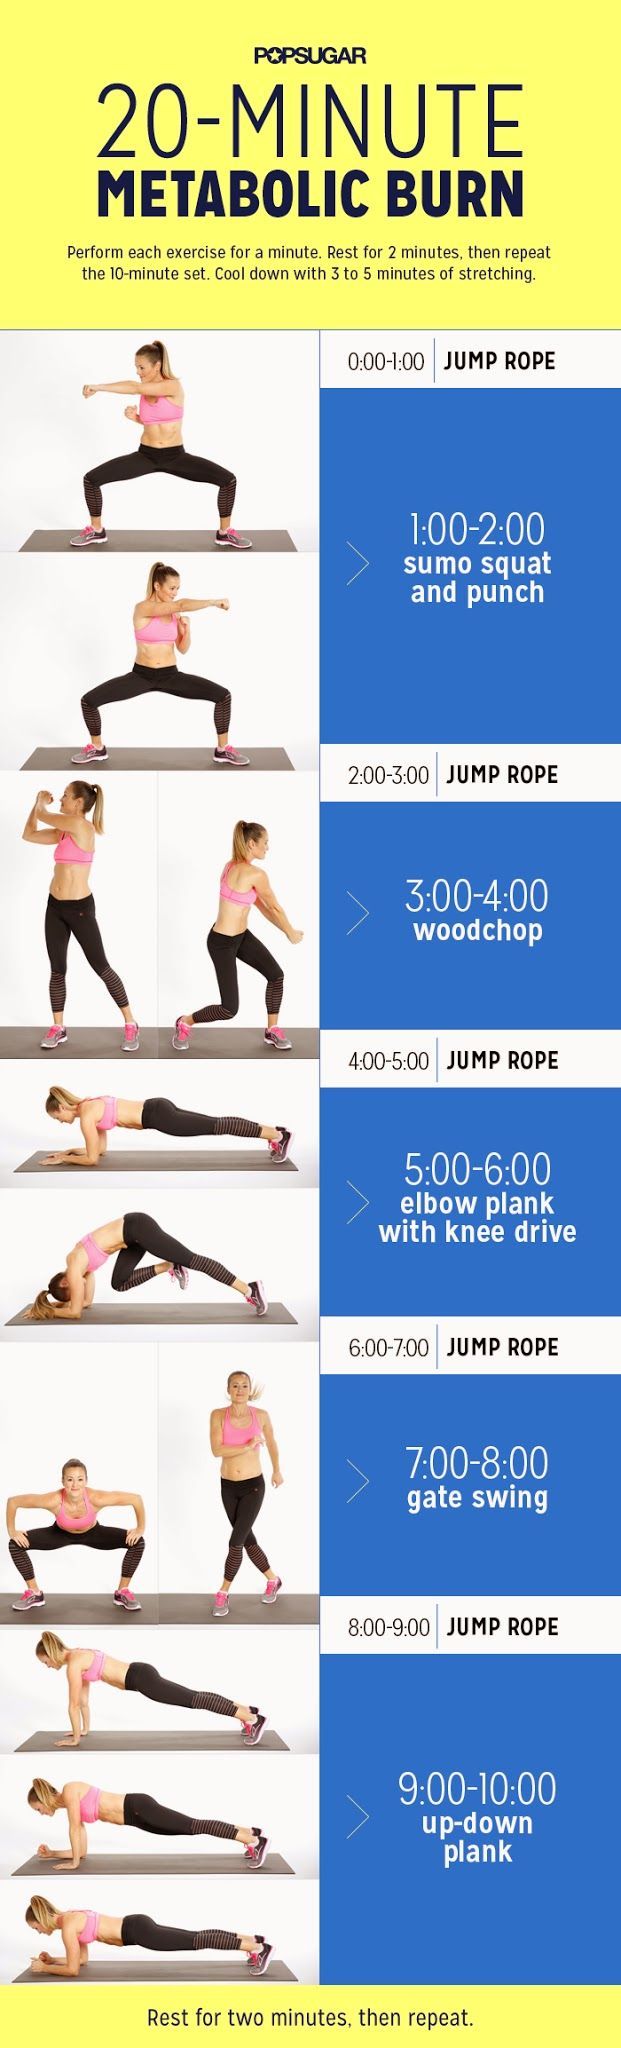 20-minute metabolic burn workout.